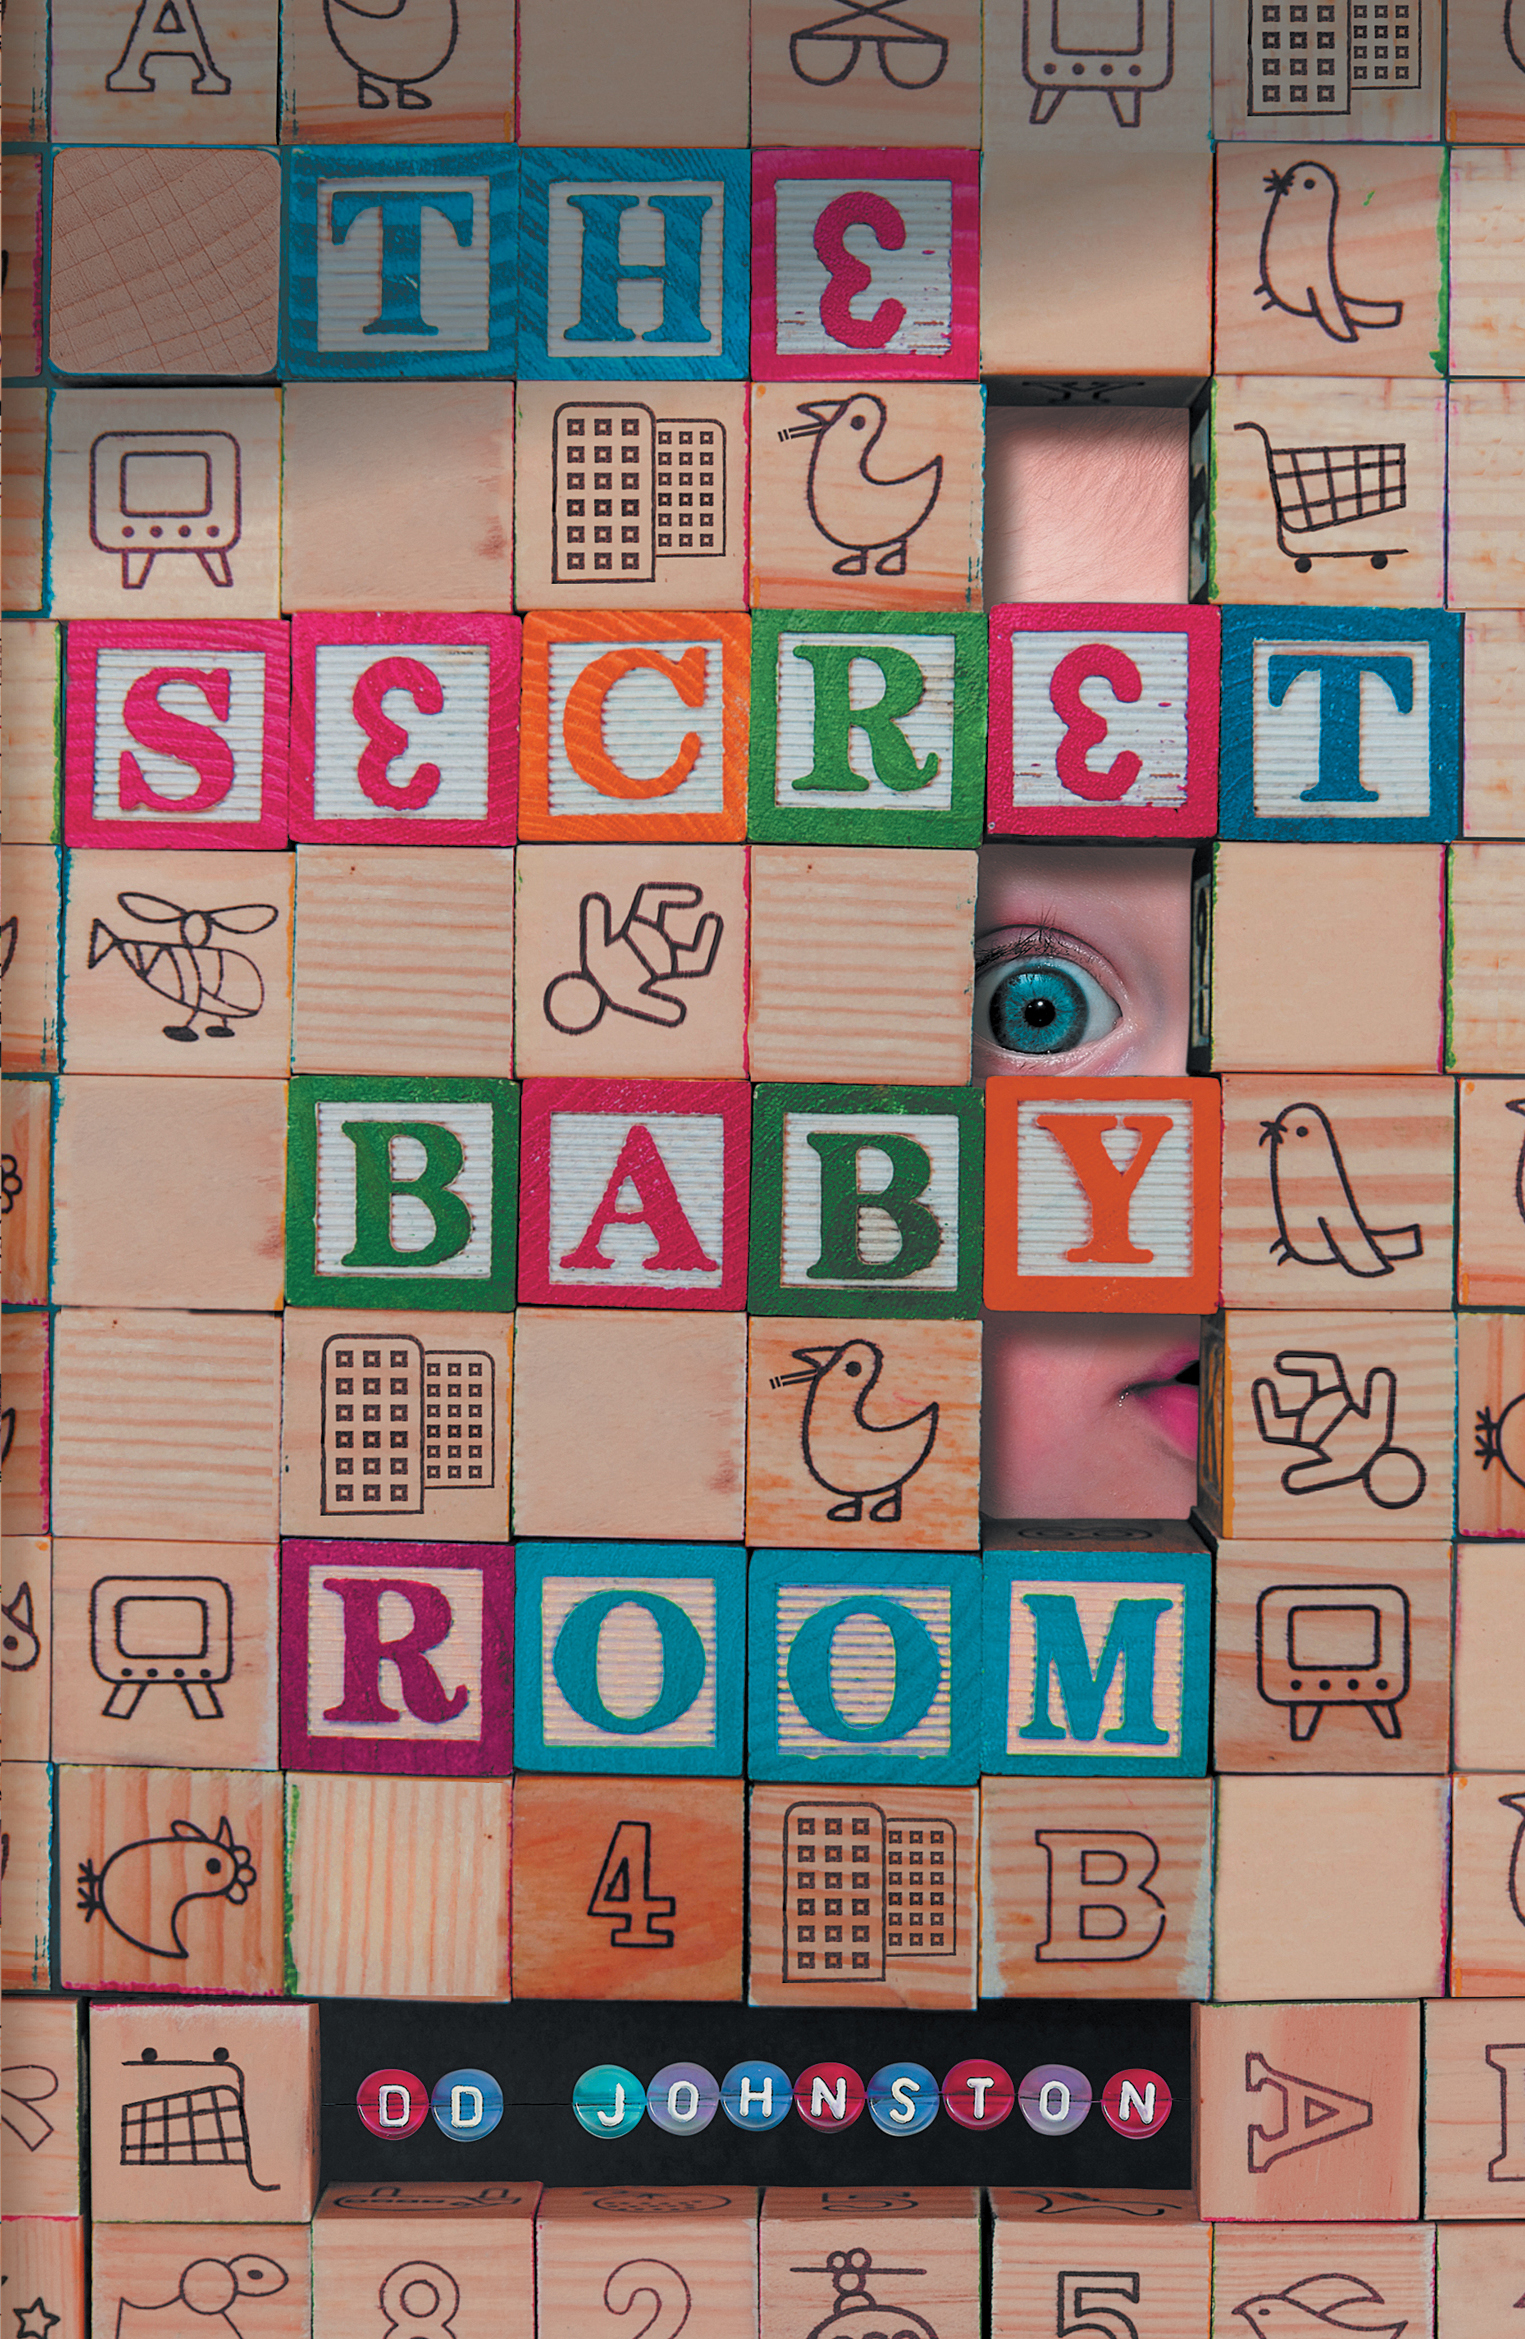 The secret Baby Room: A review of some reviews and other media